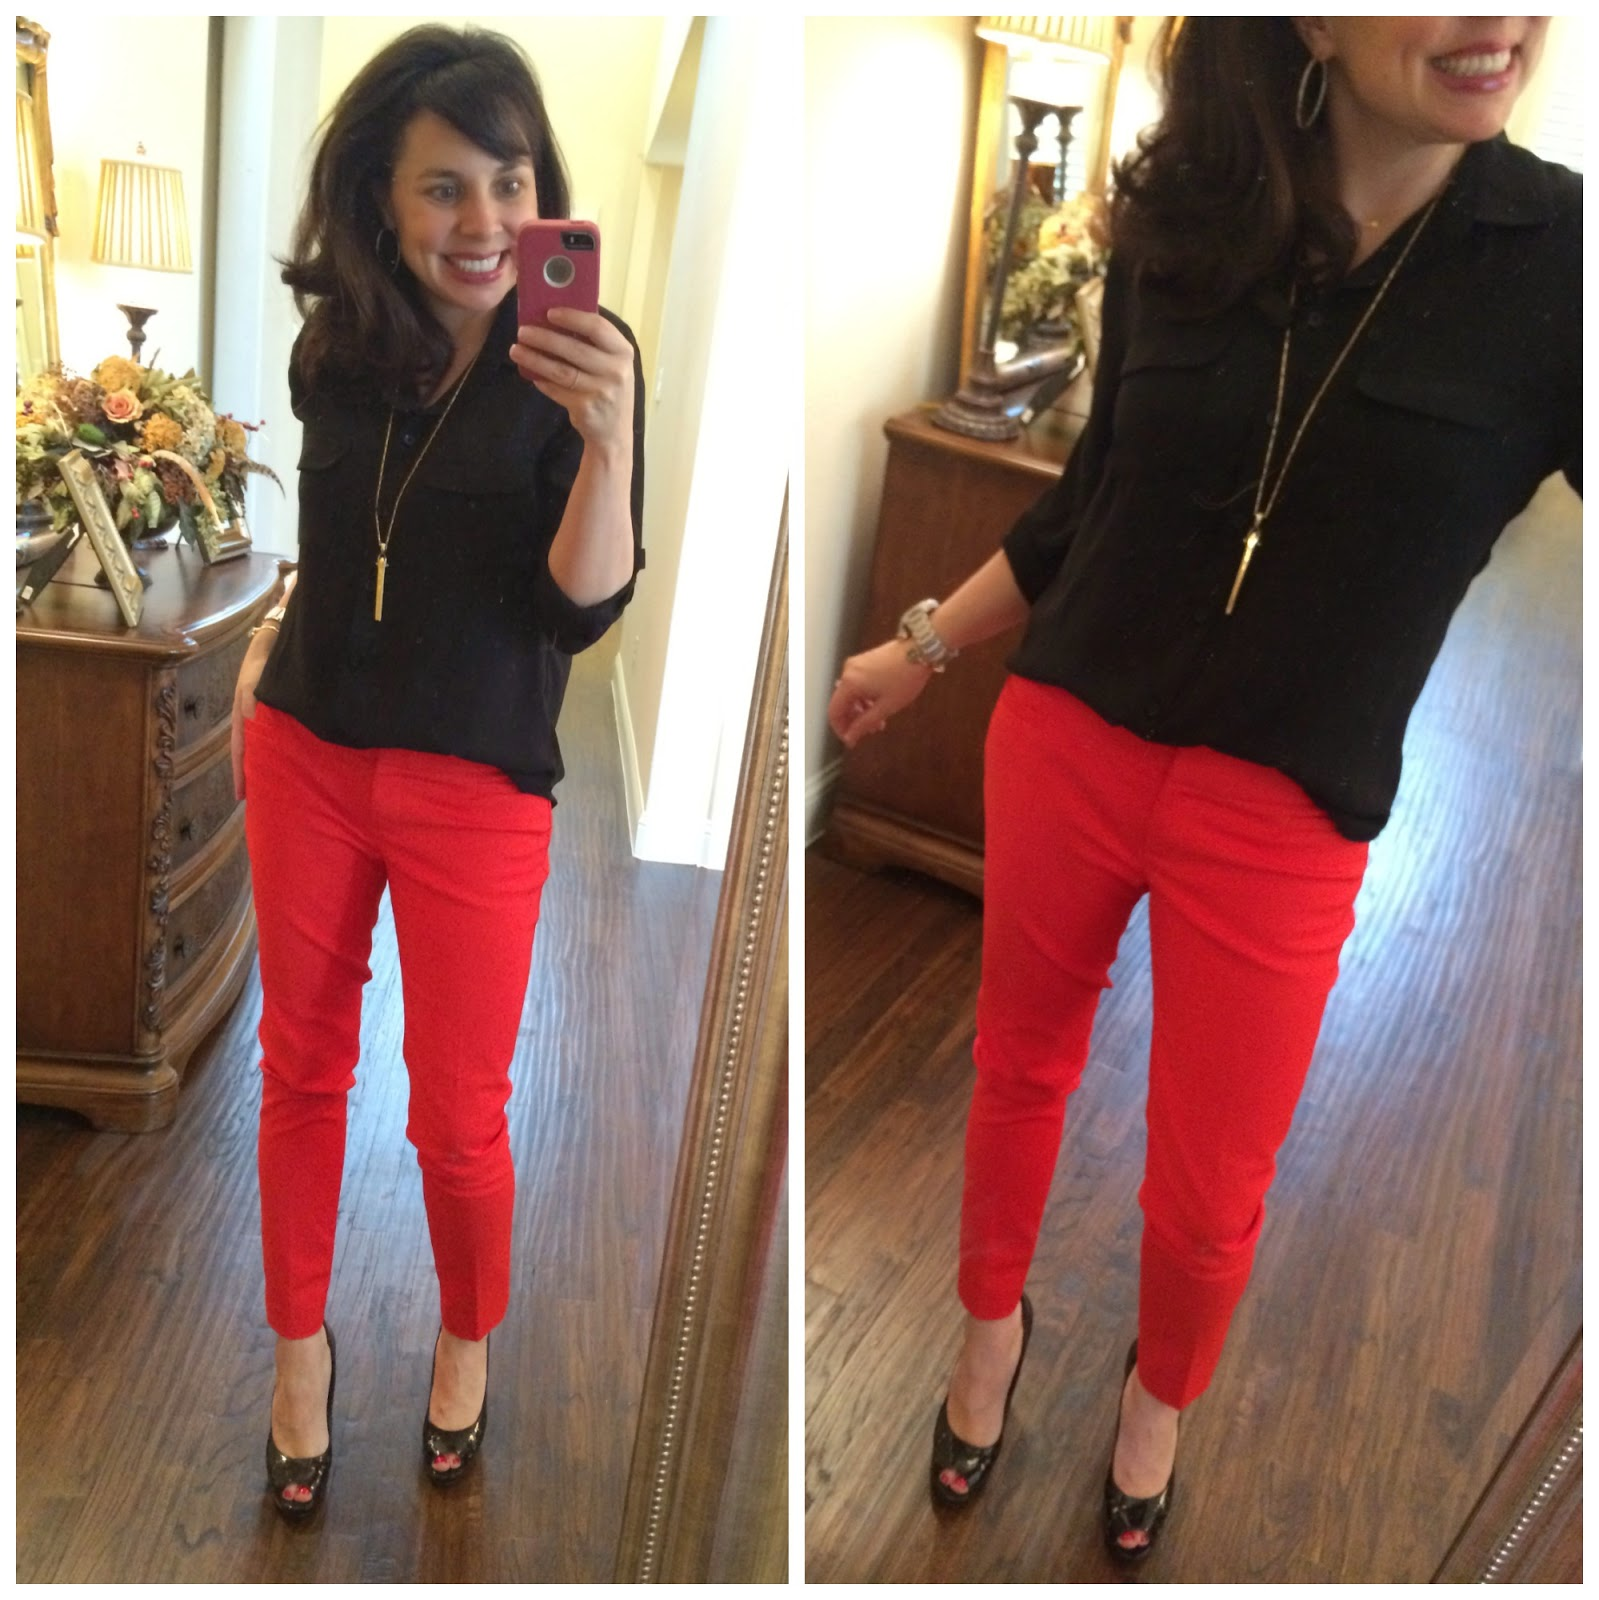 Innovative Red And Black Striped Pants Pants Women 3rdand56th  1 Stripe Skinny